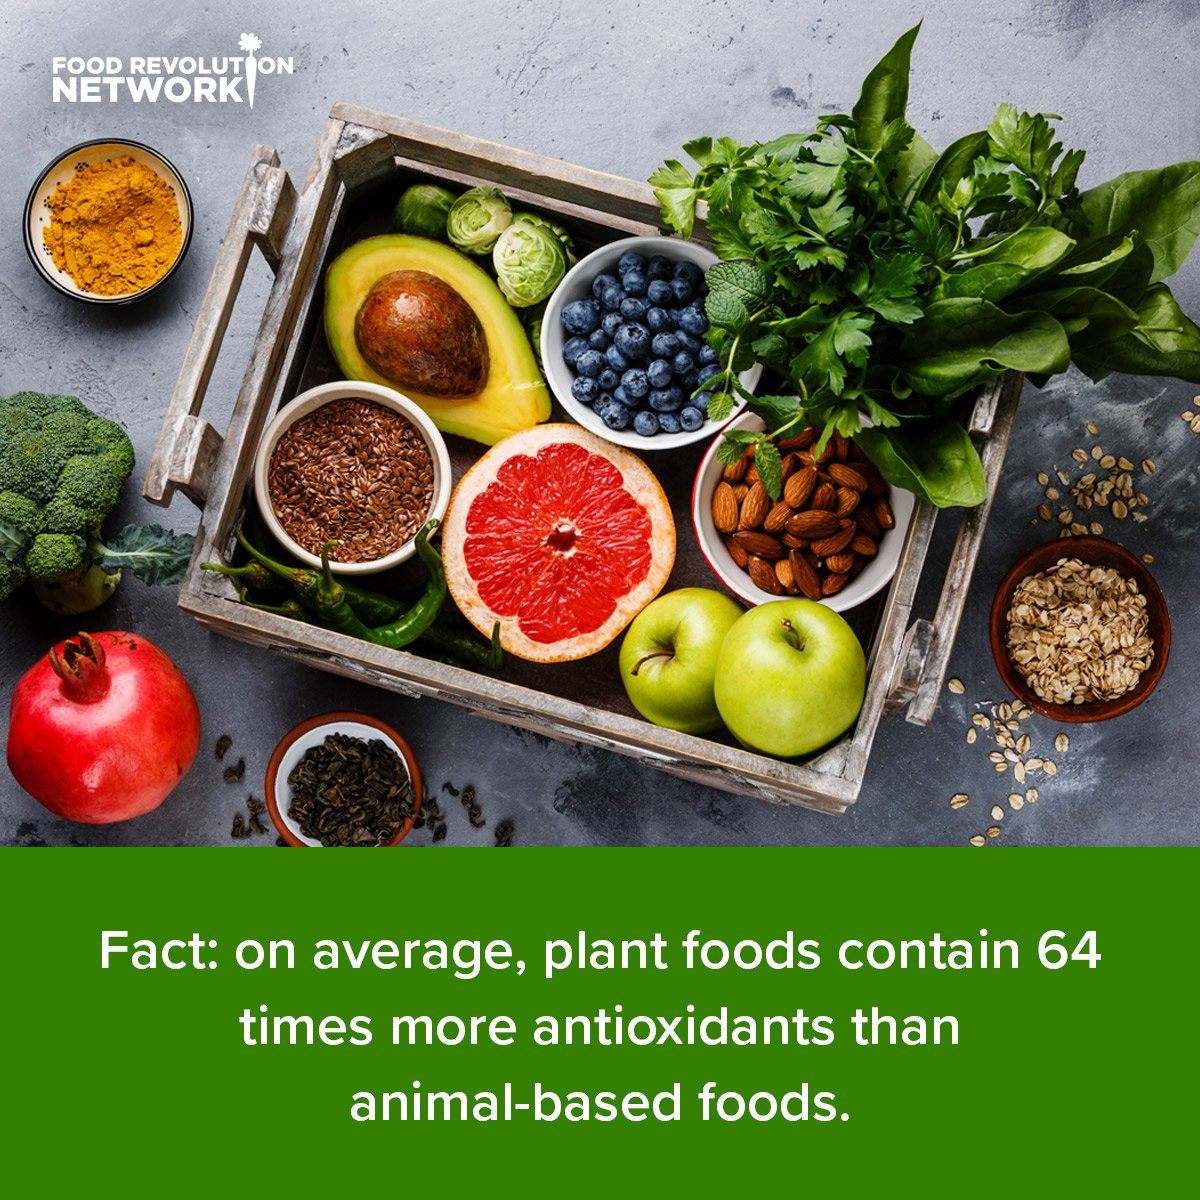 Fact: on average, plant foods contain 64 times more antioxidants than animal-based foods.